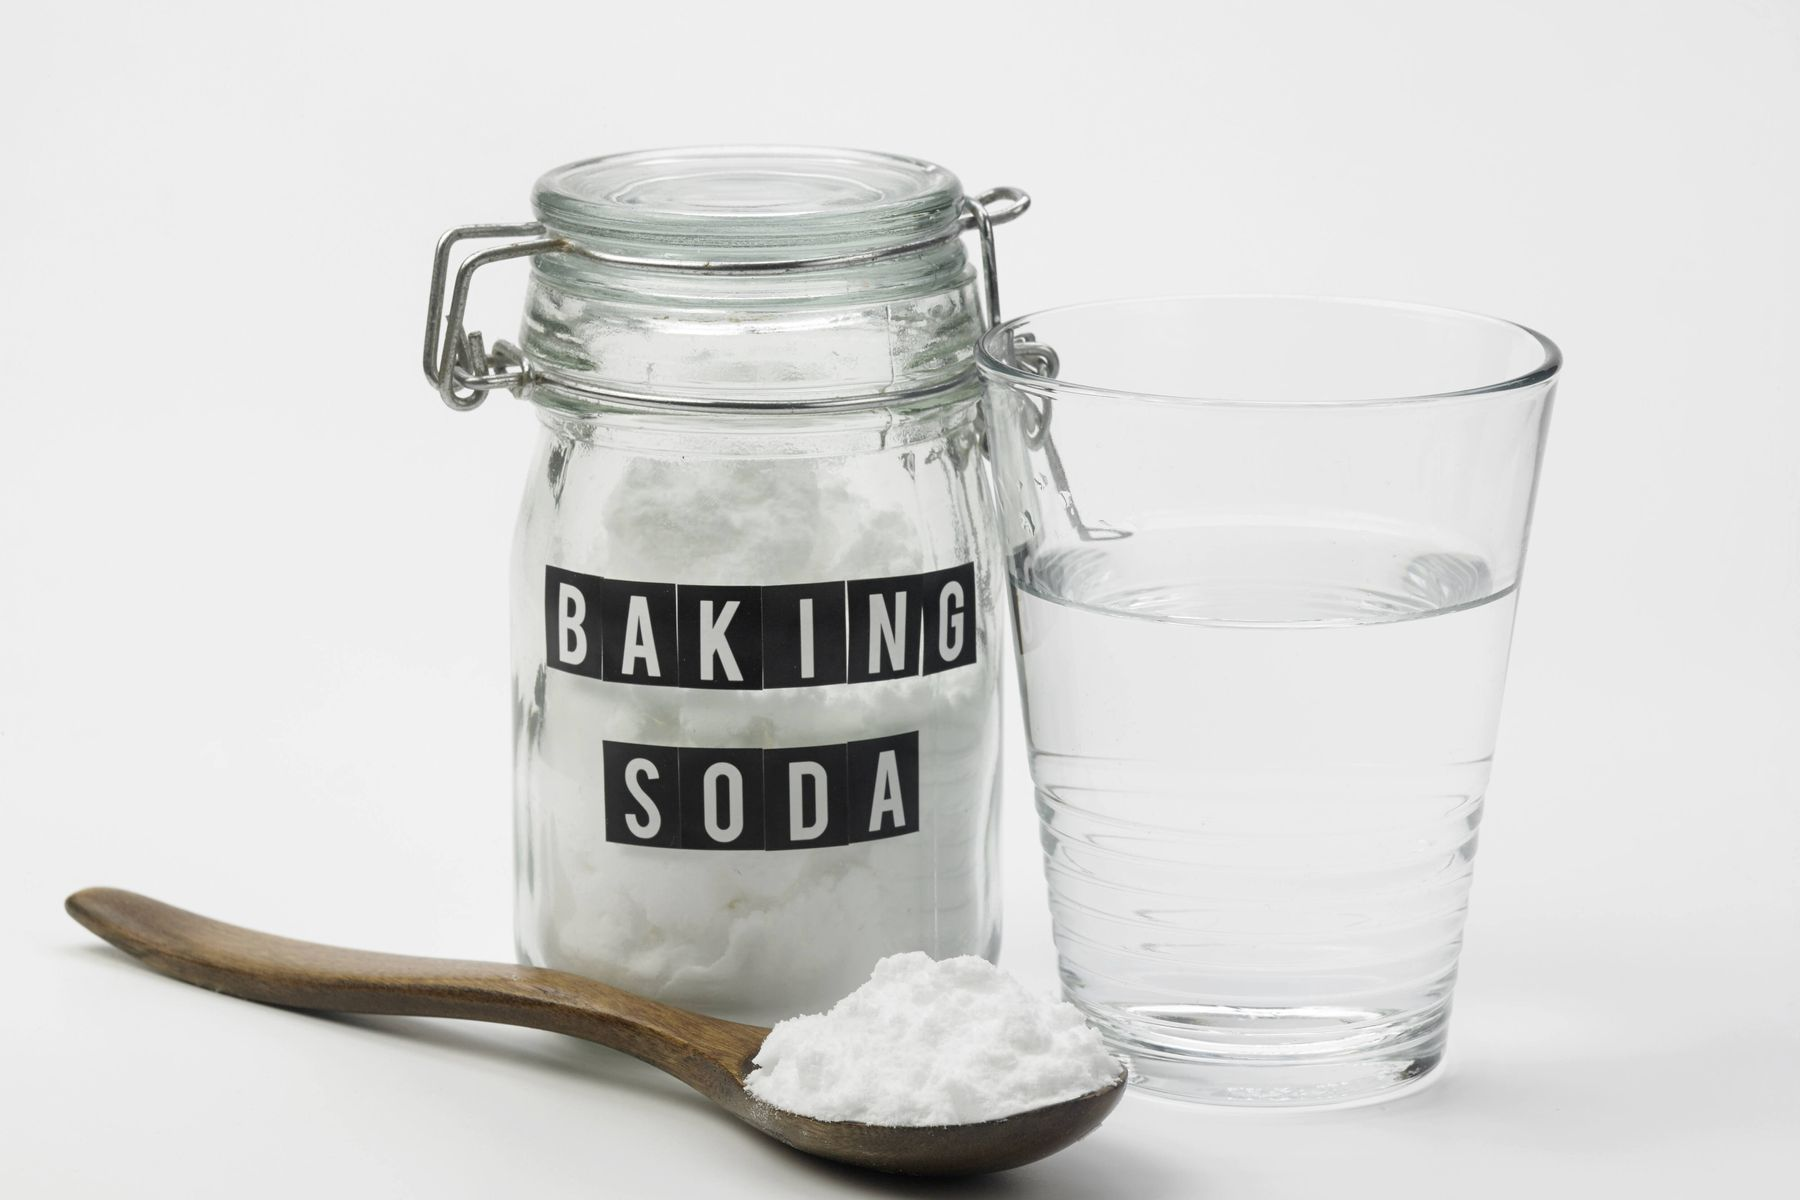 Will bicarbonate of soda get rid of smells?